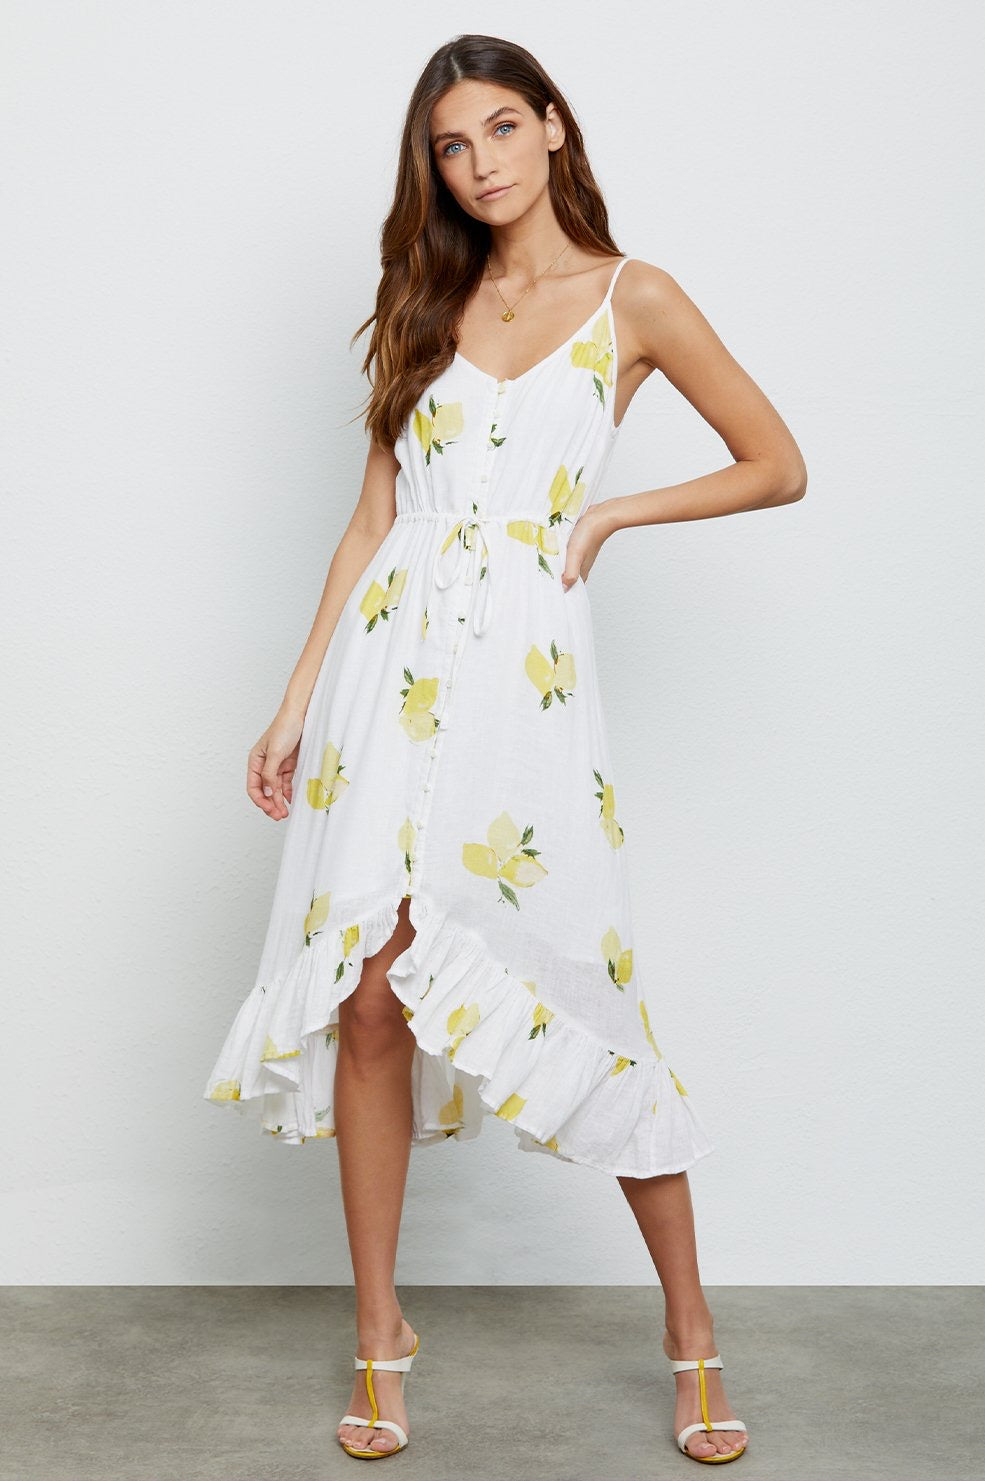 Frida Citronnade Dress